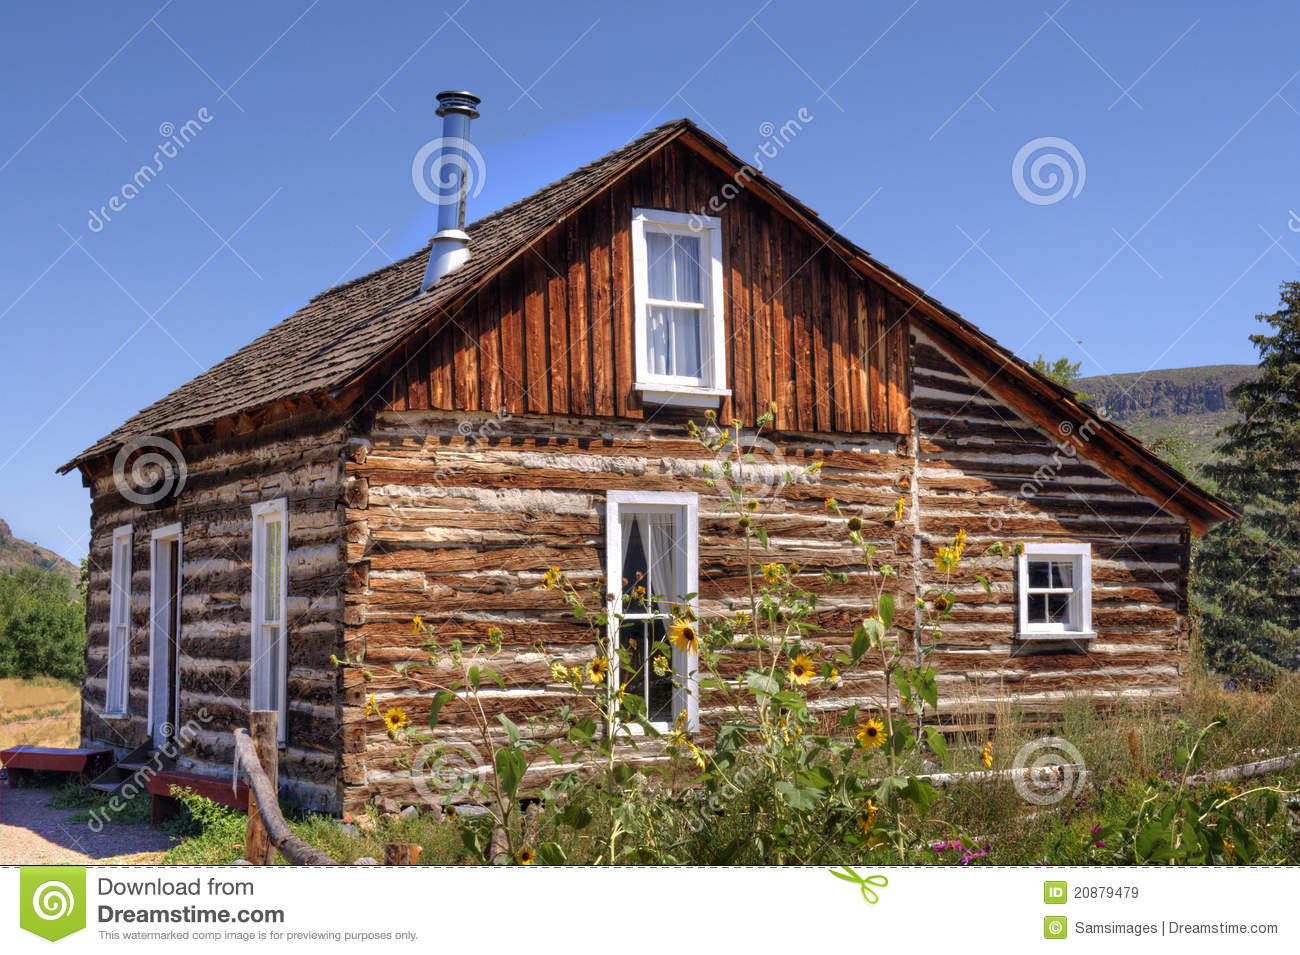 Authentic log cabin circa 1800s in a beautiful summer's day in 2011.